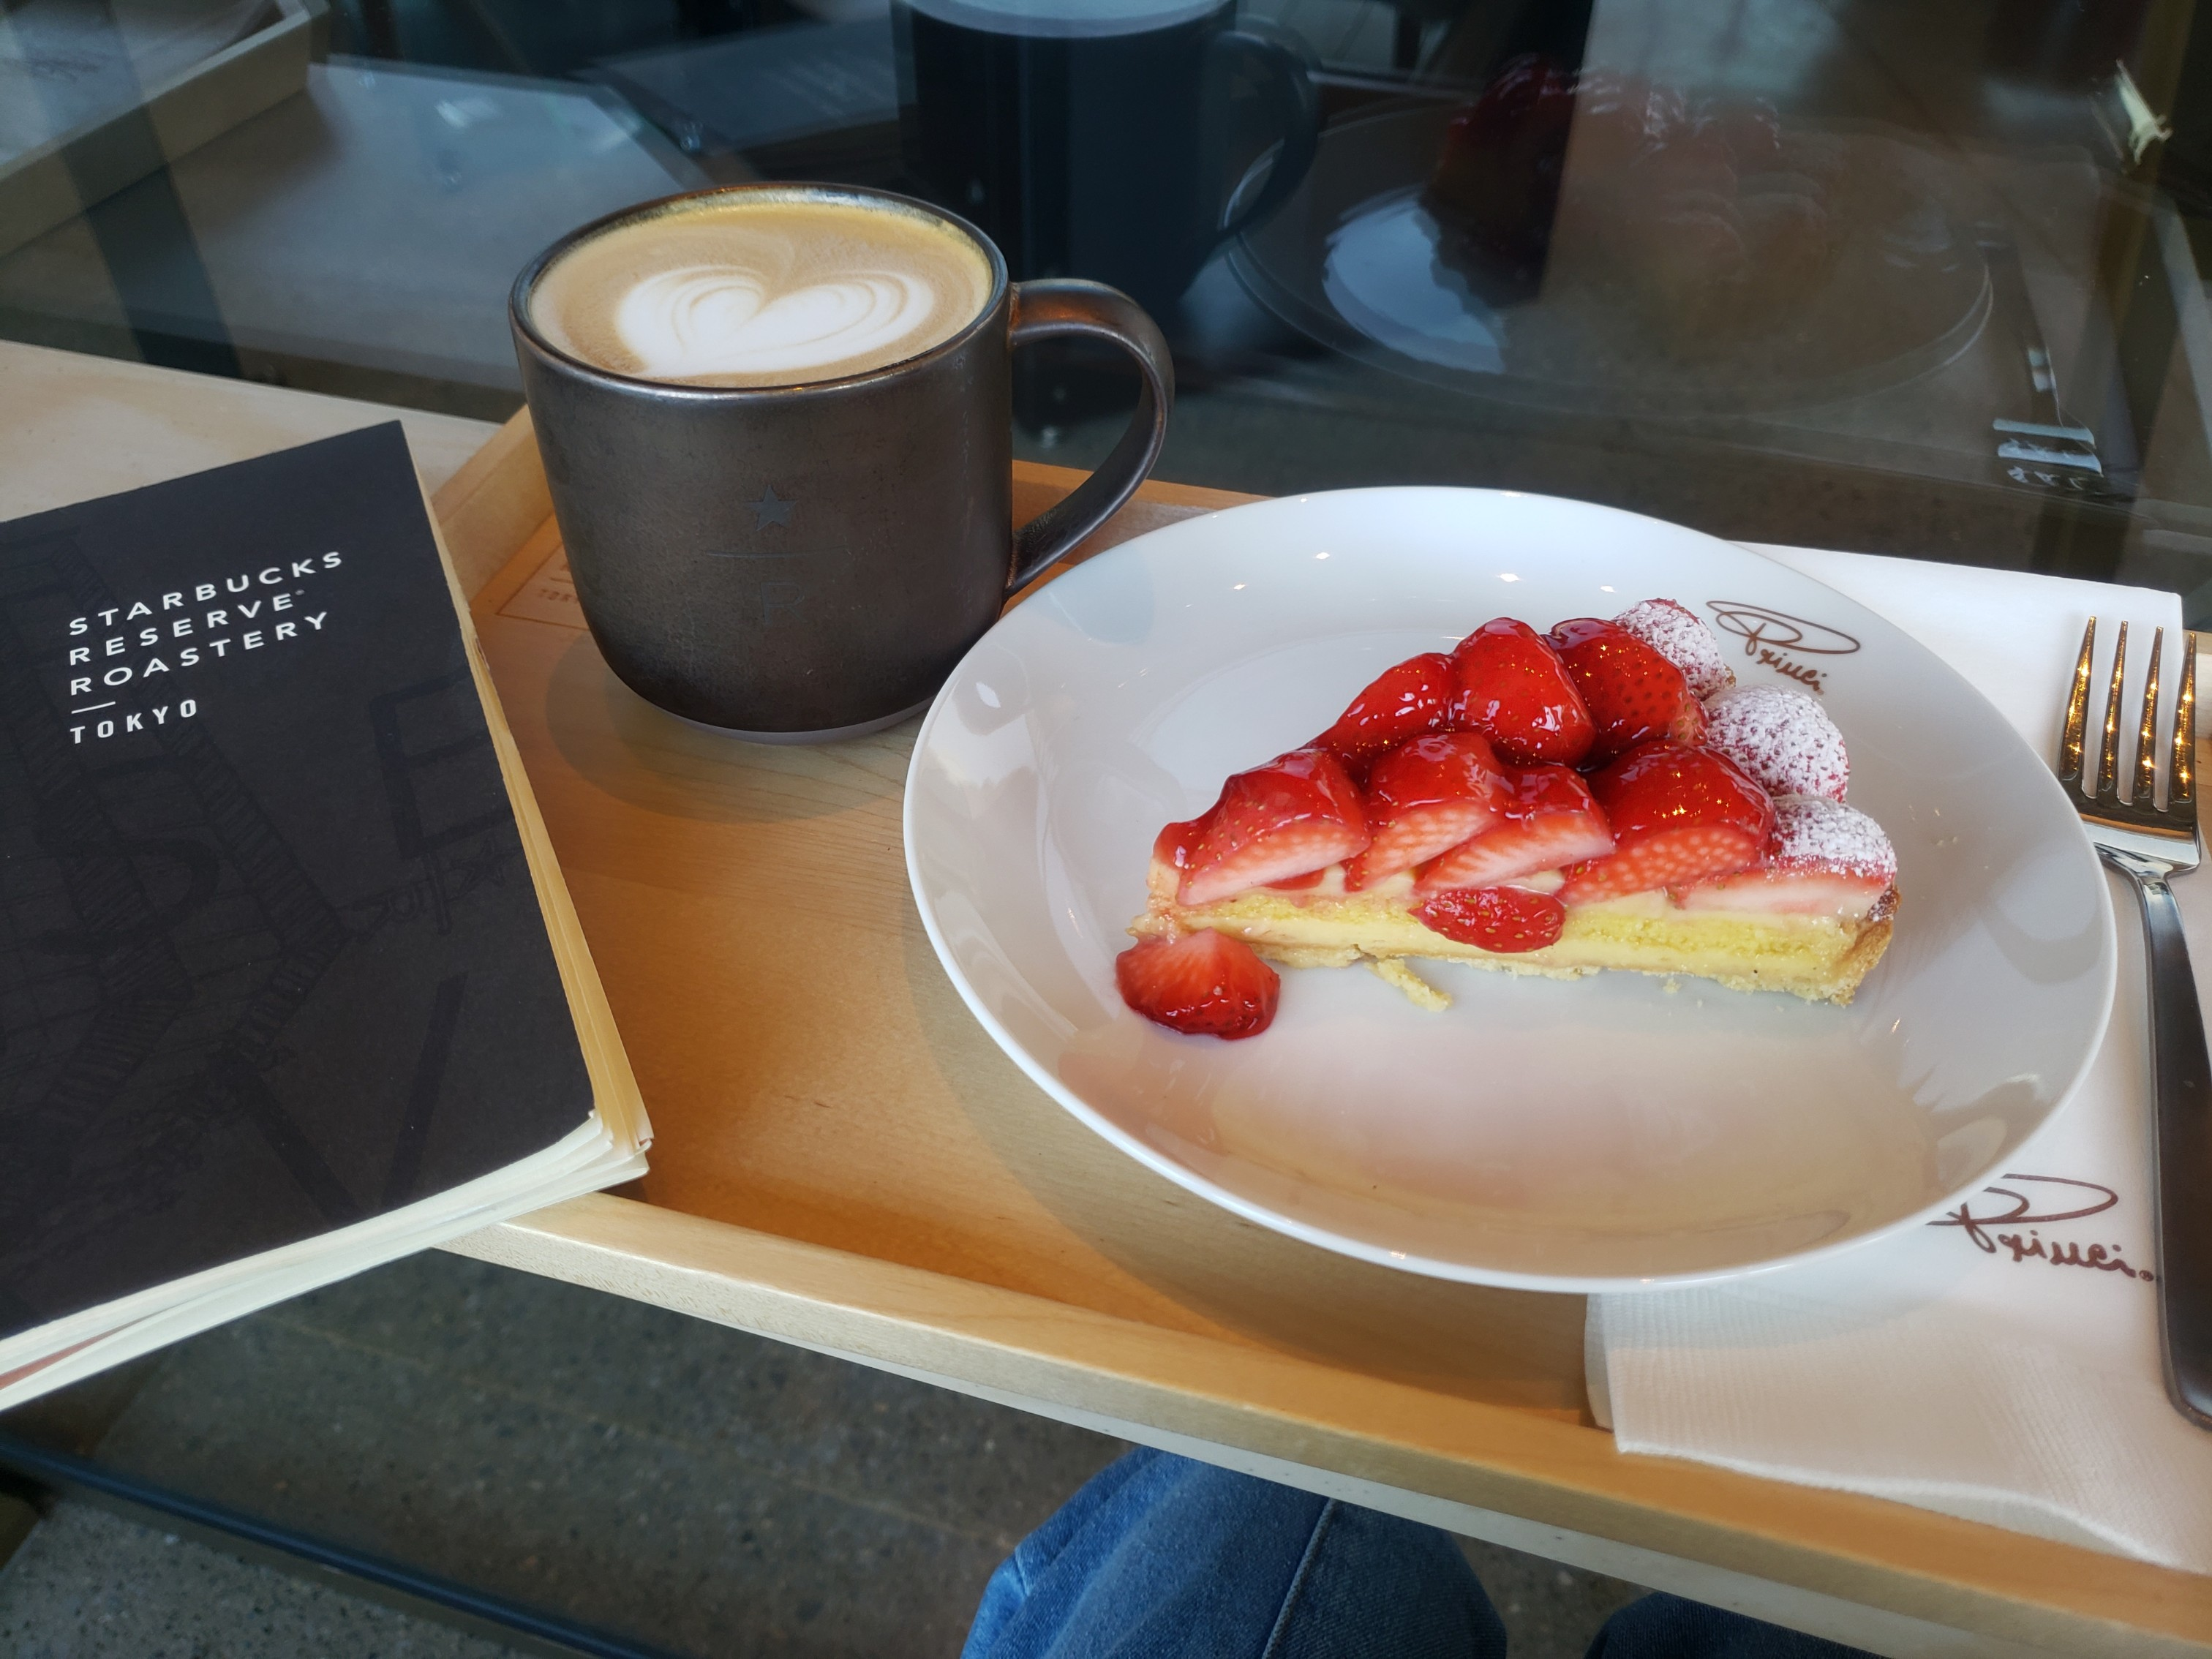 【STARBUCK RESERVE ROASTERY TOKYO】は、カフェテーマパーク☆第2段_2